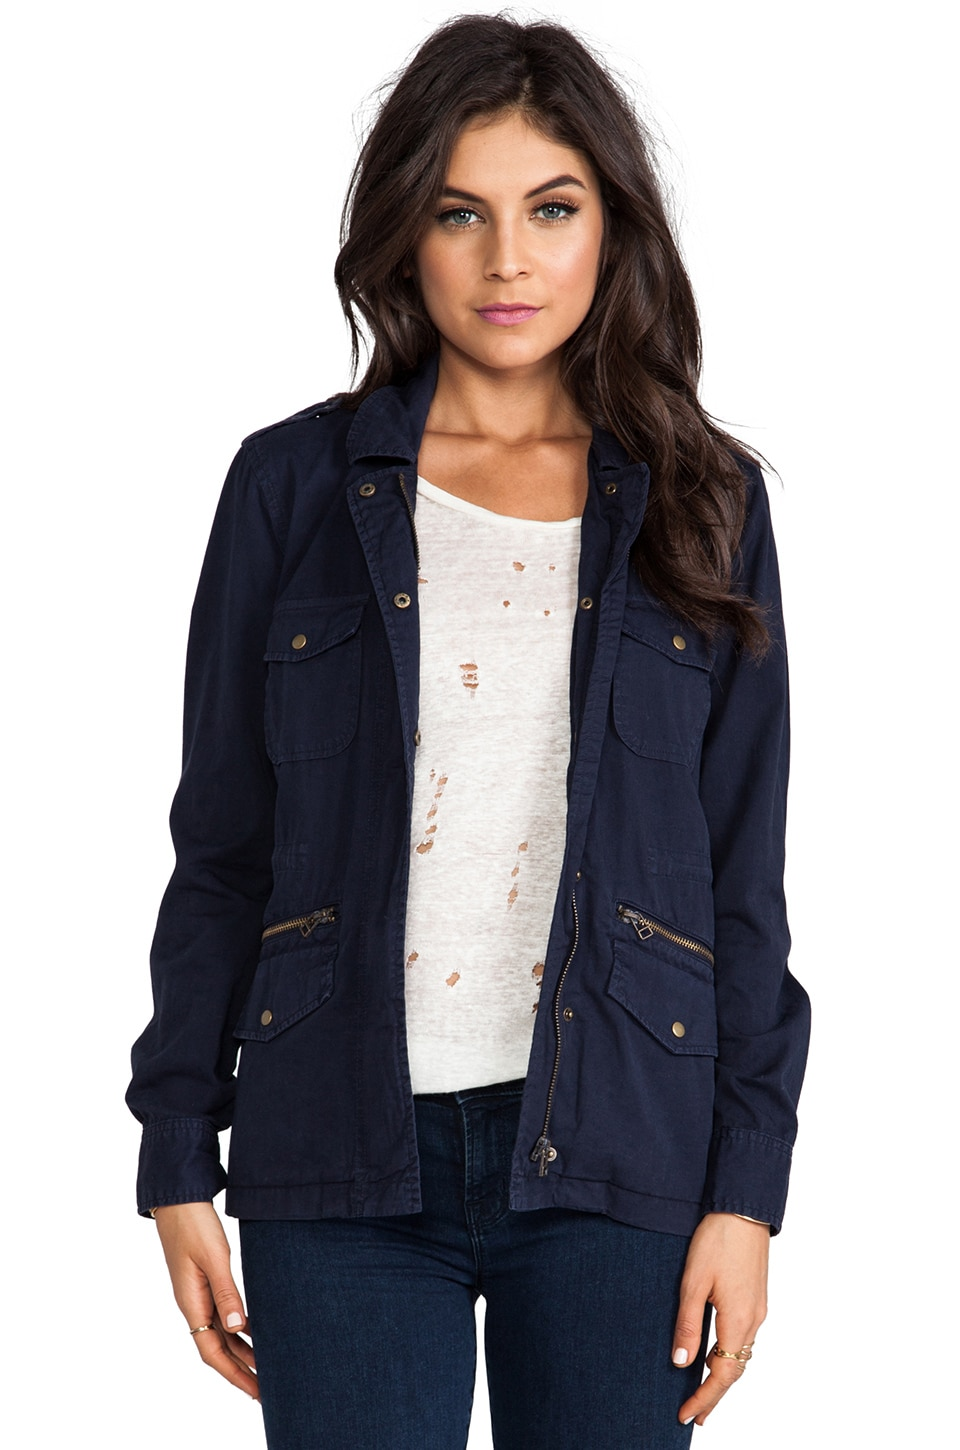 Velvet by Graham & Spencer x Lily Aldridge Ruby Army Jacket in Navy